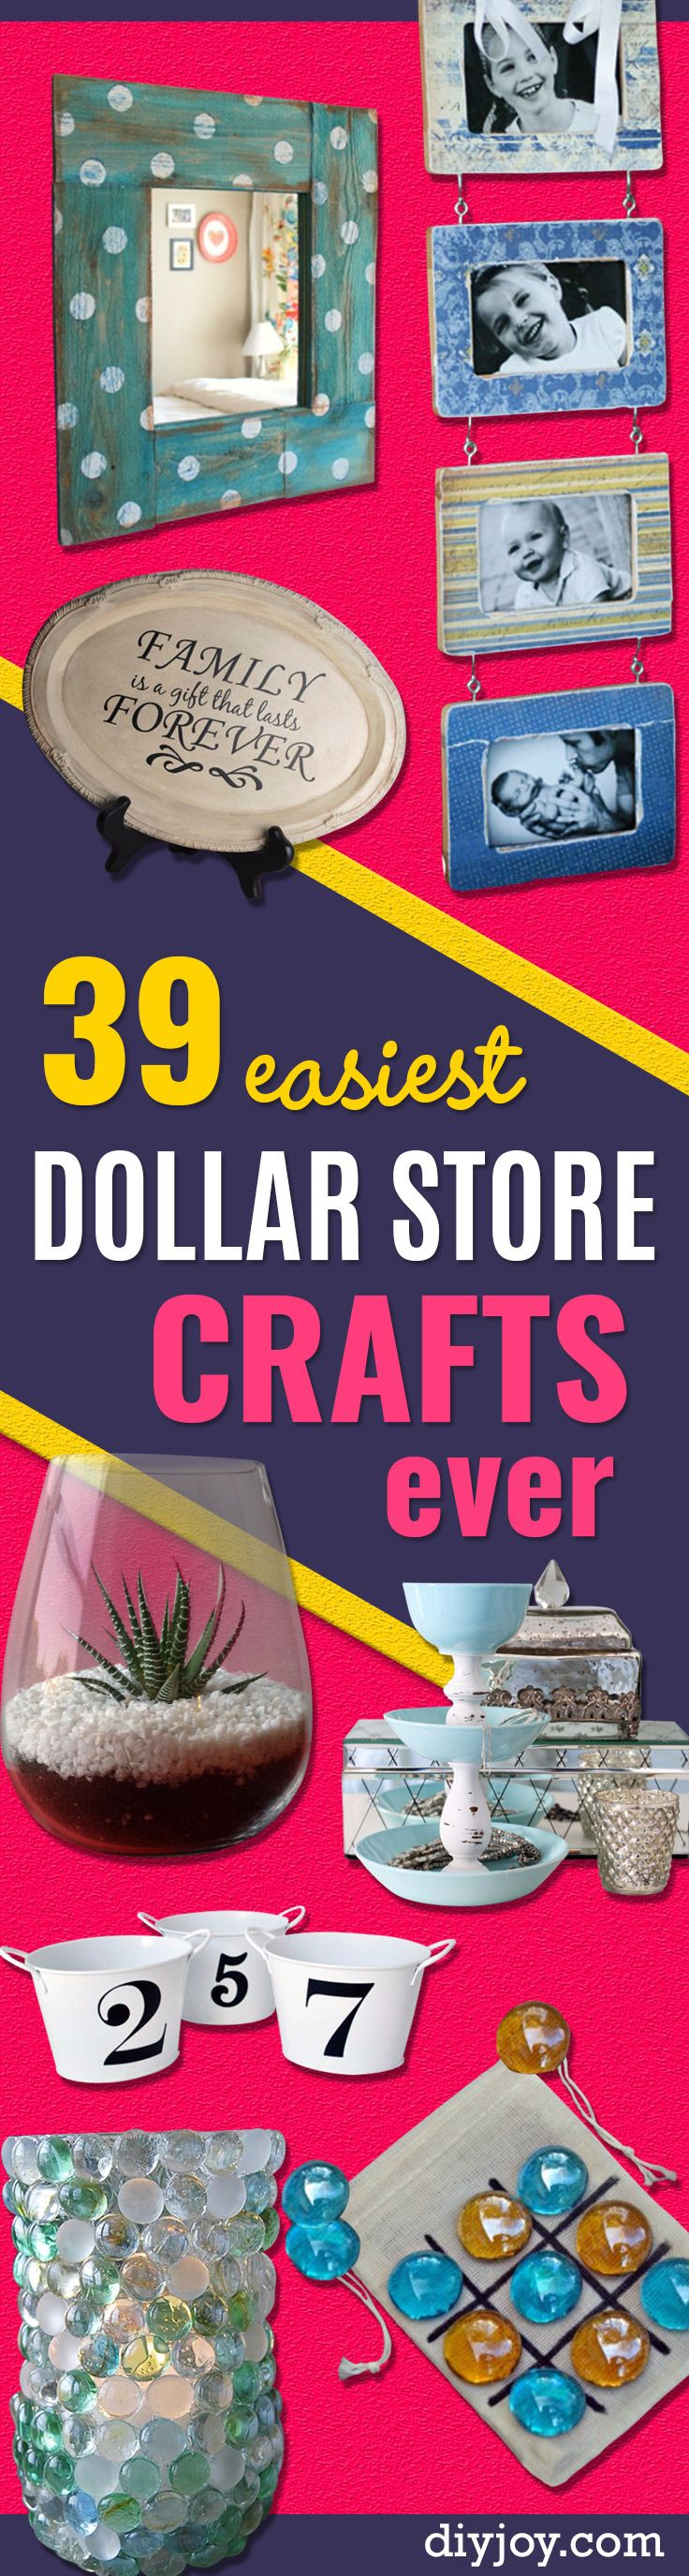 39 Easiest Dollar Store Crafts Ever - Quick And Cheap Crafts To Make, Dollar Store Craft Ideas To Make And Sell, Cute Dollar Store Do It Yourself Projects, Cheap Craft Ideas, Dollar Sore Decor, Creative Dollar Store Crafts http://diyjoy.com/easy-dollar-store-crafts